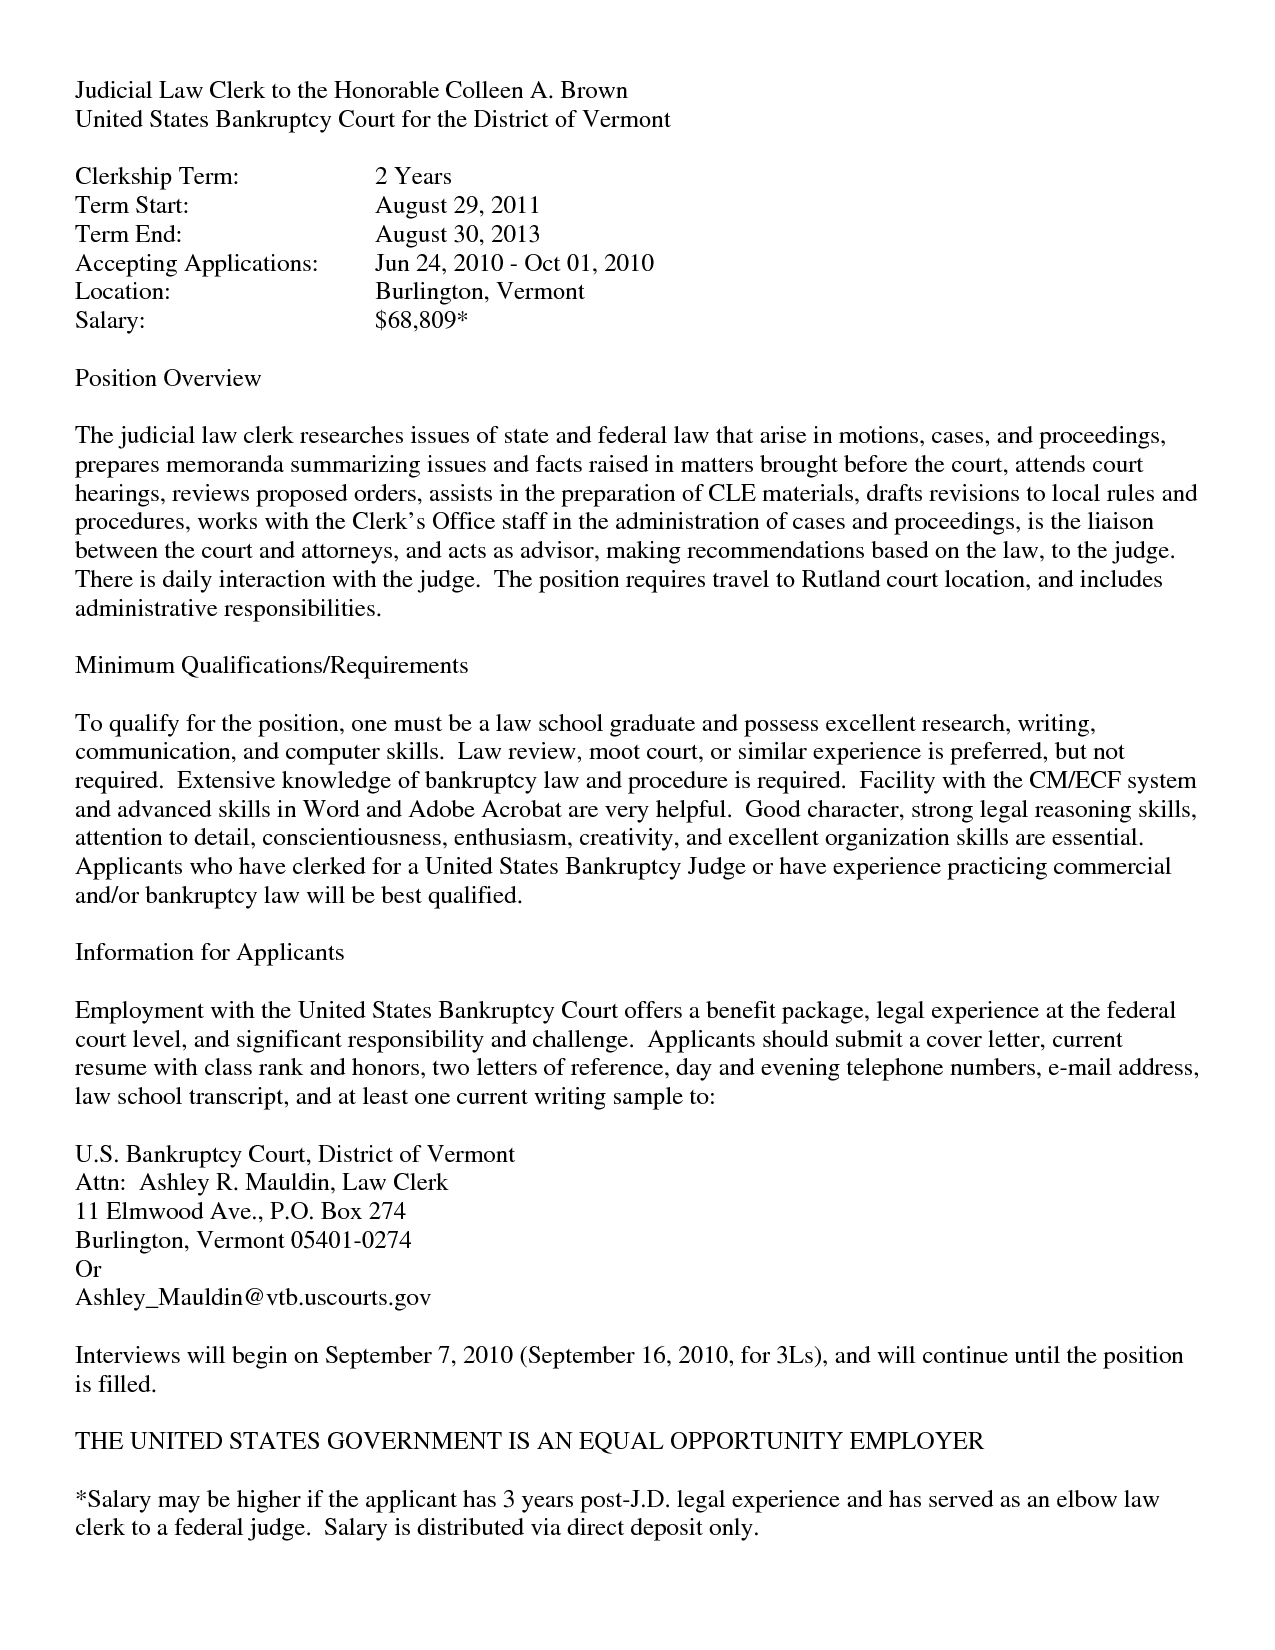 School Recommendation Letter Template - Re Mendation Letter Sample for Job Applicationreference Letter